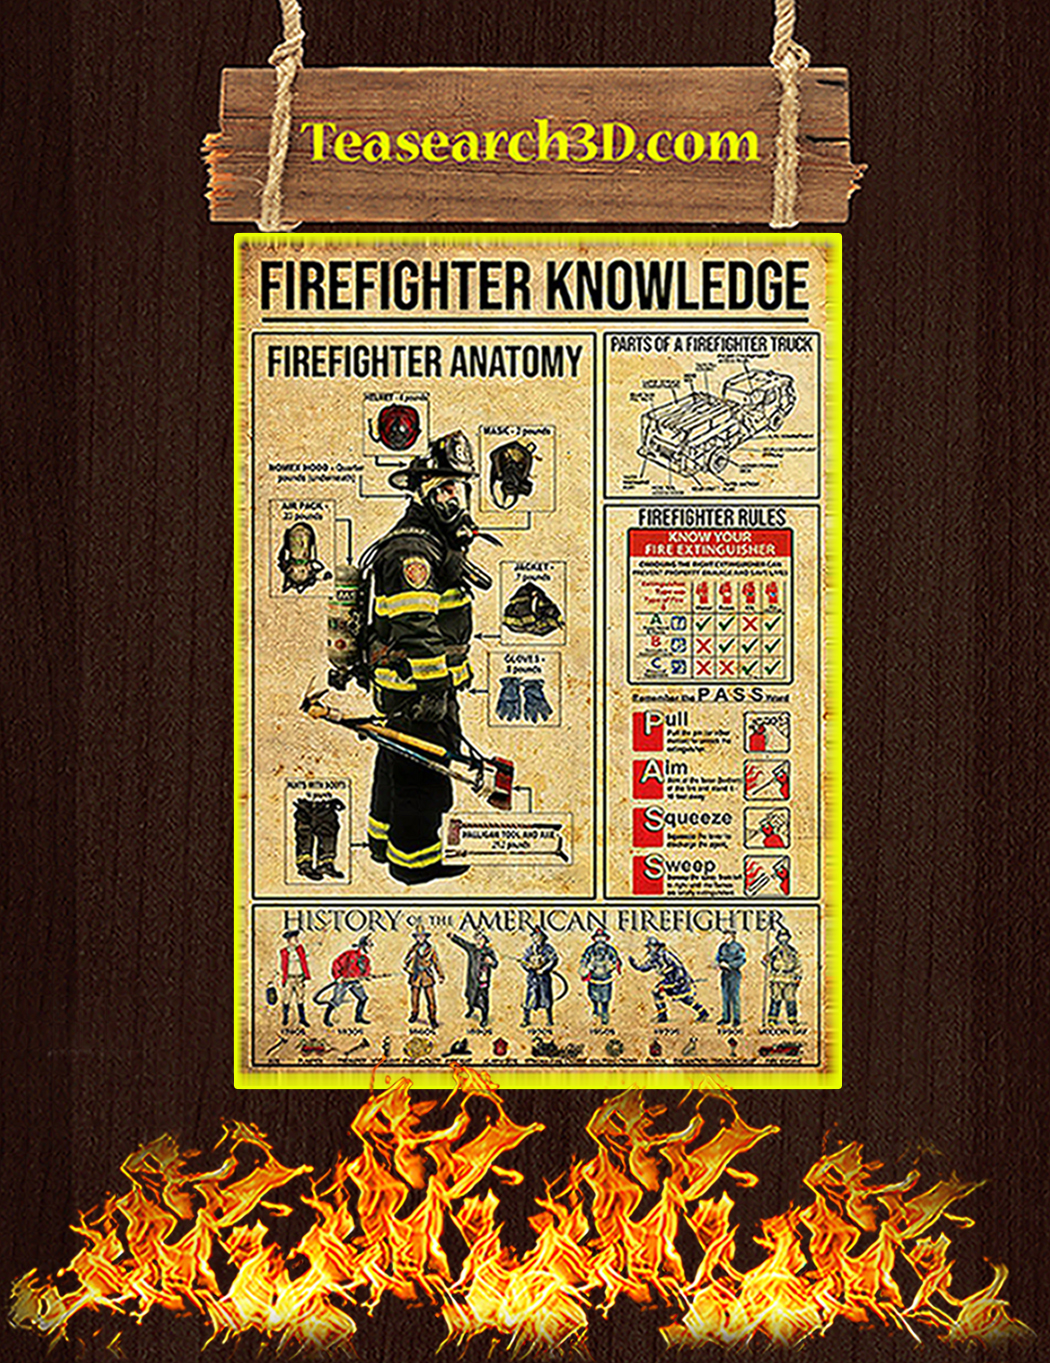 Firefighter knowledge poster A1